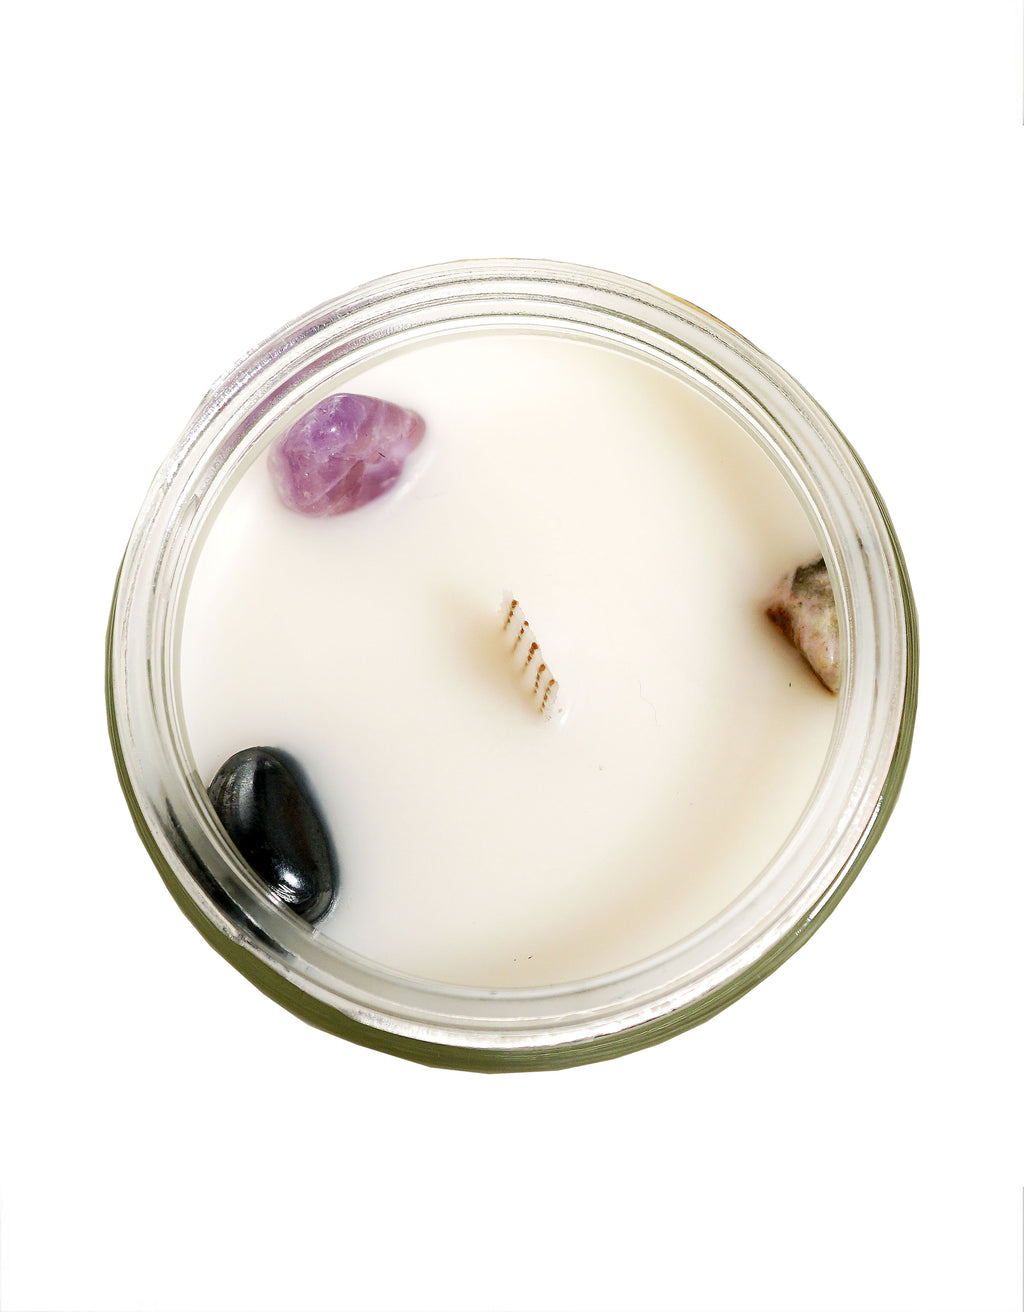 Calming Crystal Candle with Amethyst, Hematite and Ocean Jasper